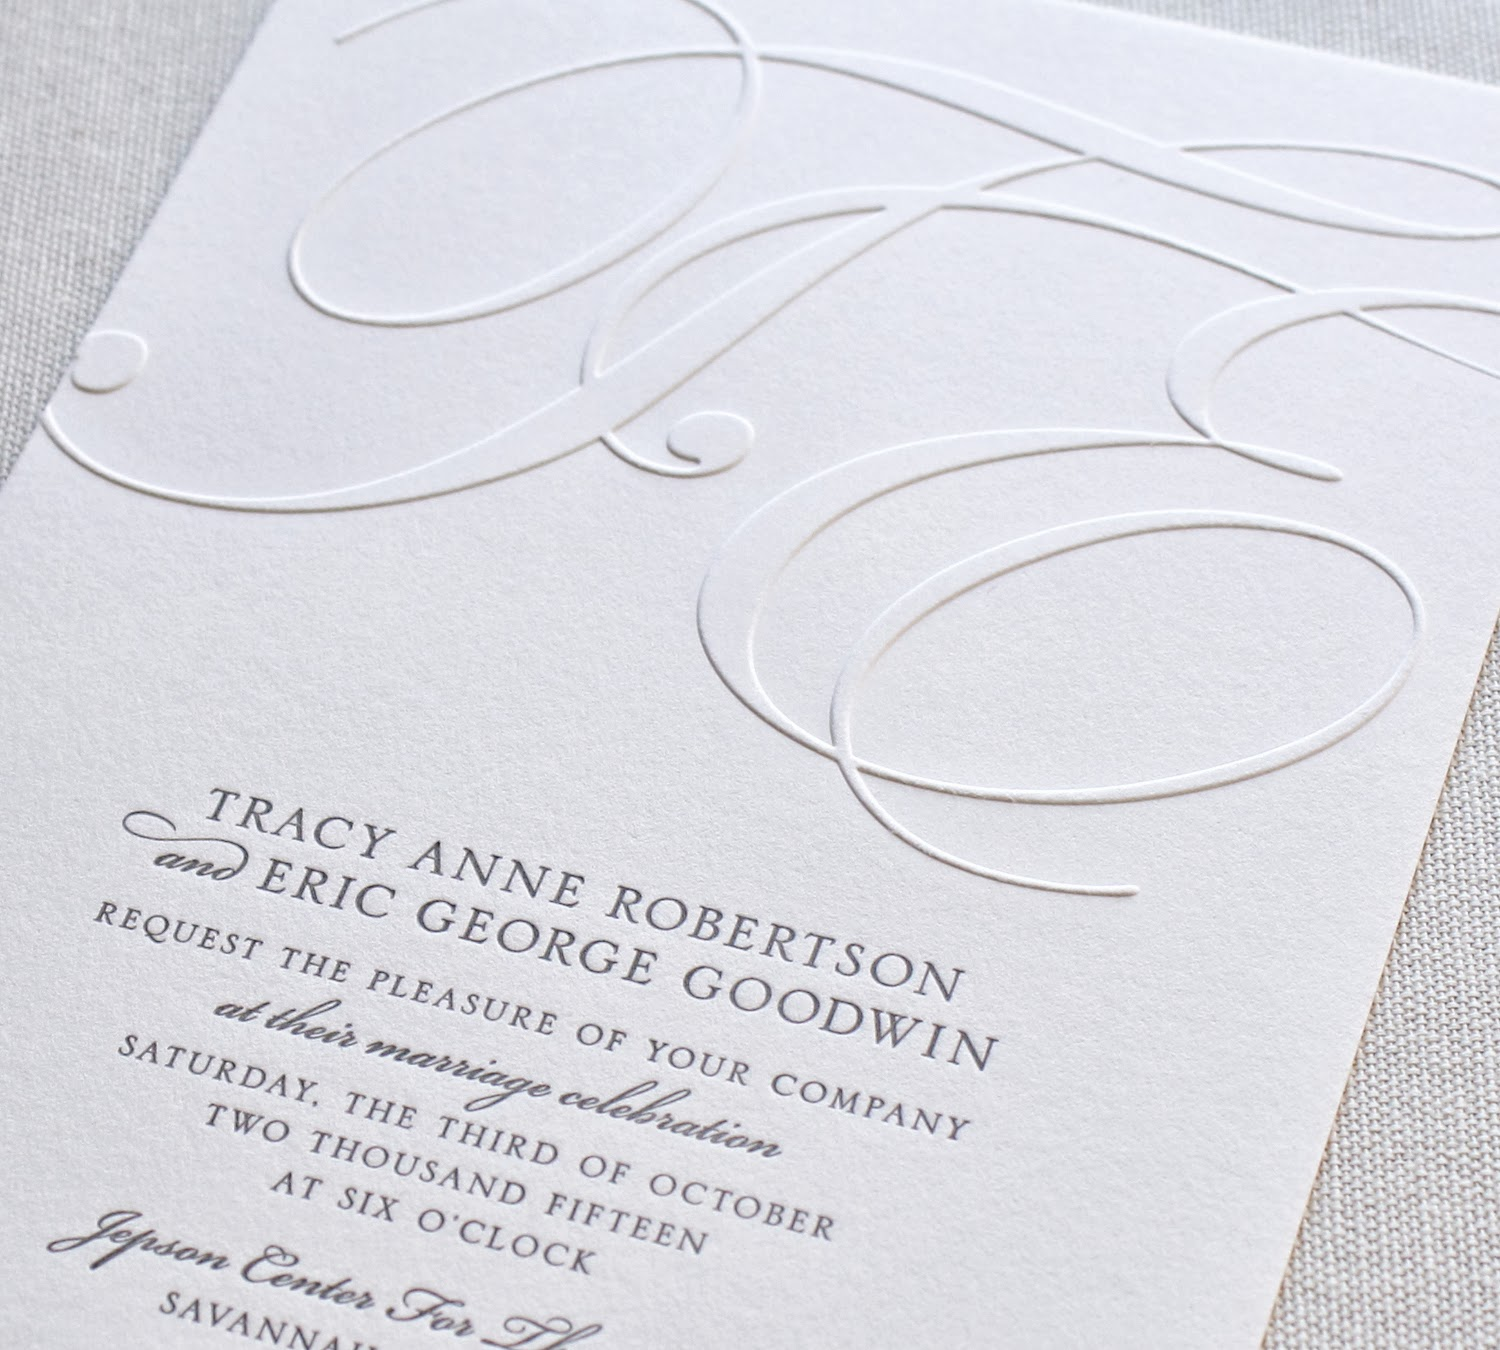 Ordering Your Wedding Invitations 101: Advice From A Stationer